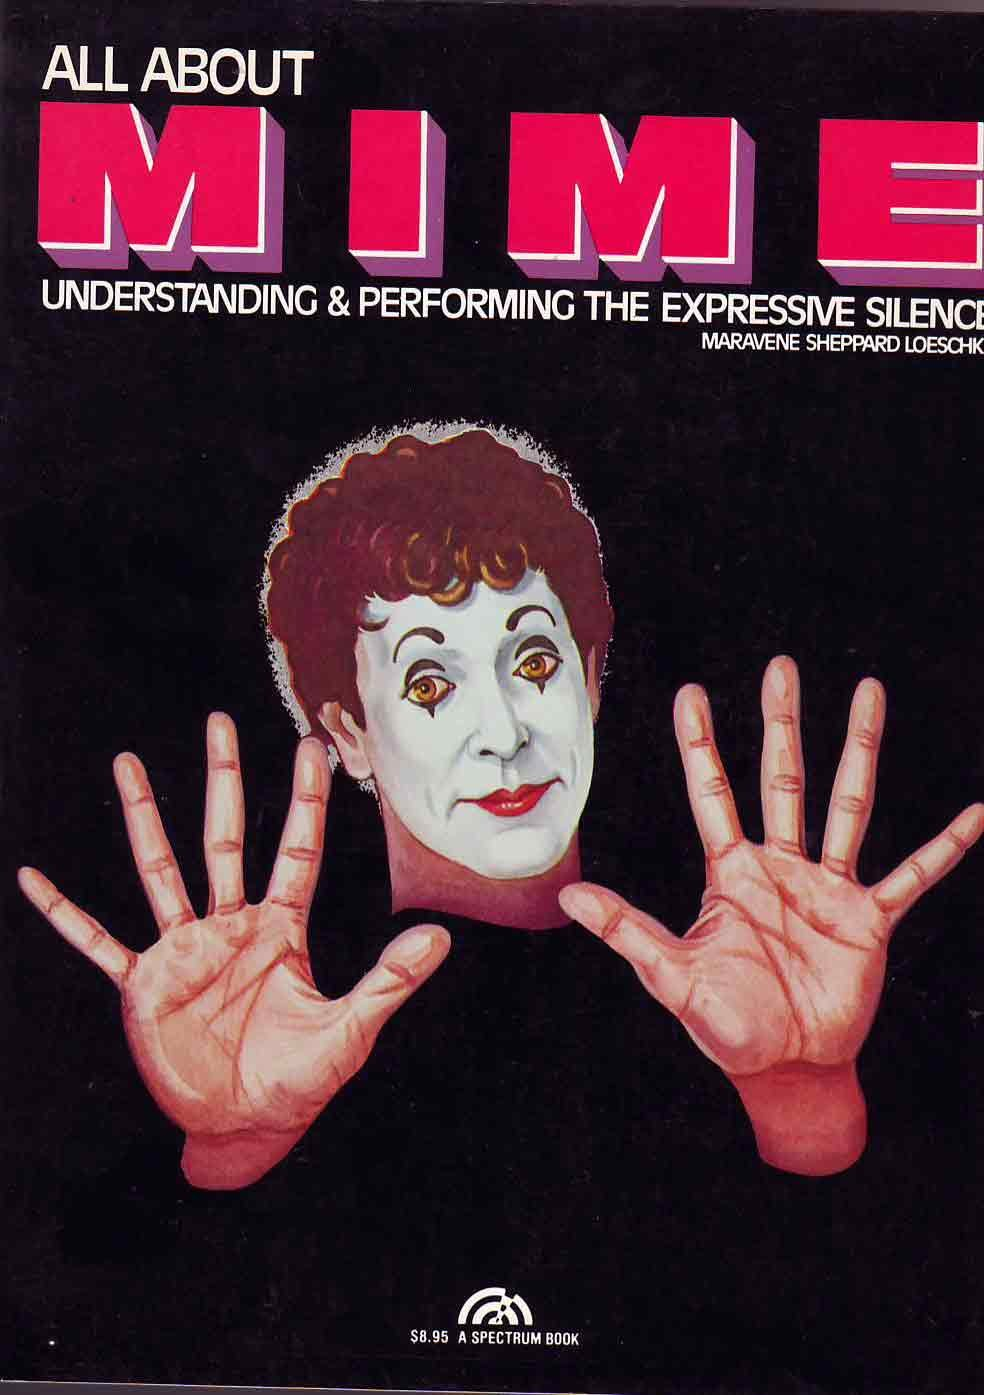 All About Mime: Understanding and Performing the Expressive Silence